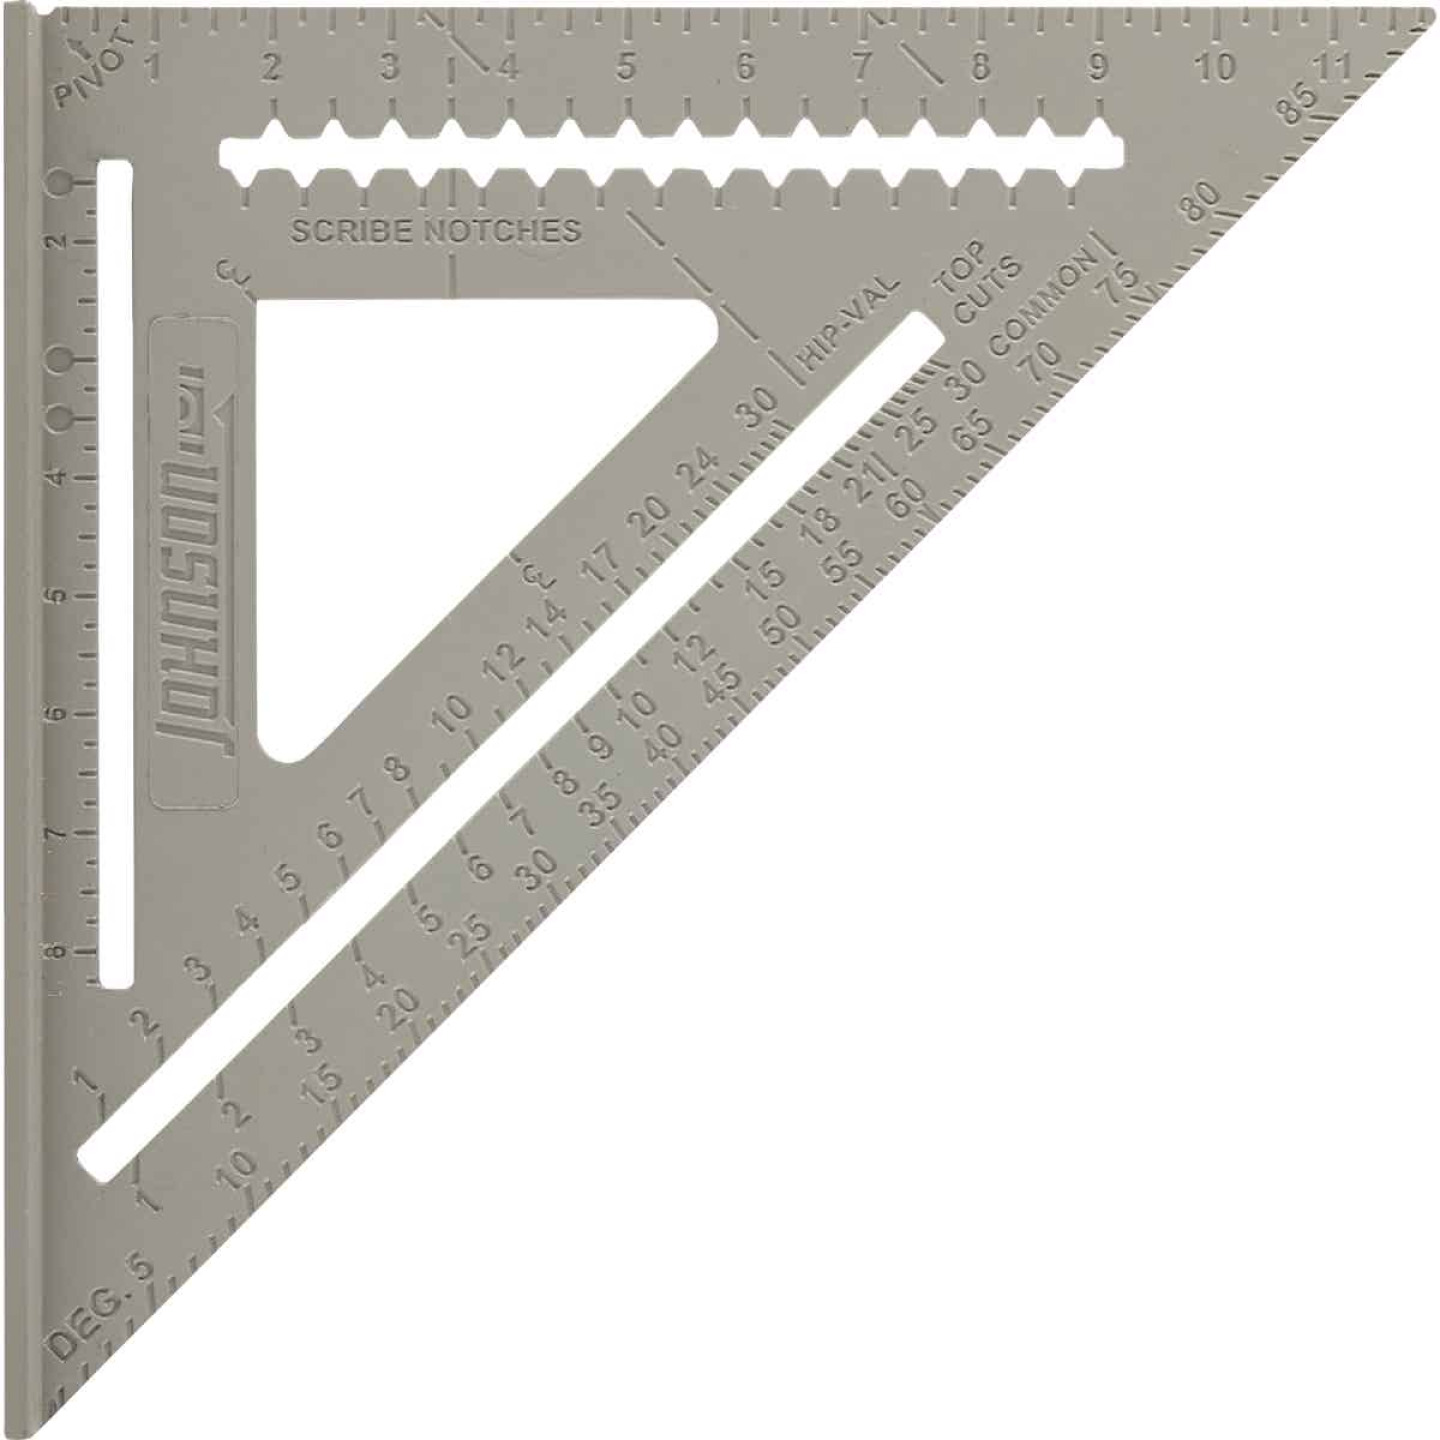 Johnson Level 12 In. Aluminum Rafter Square with Instruction Manual & Rafter Tables Image 1